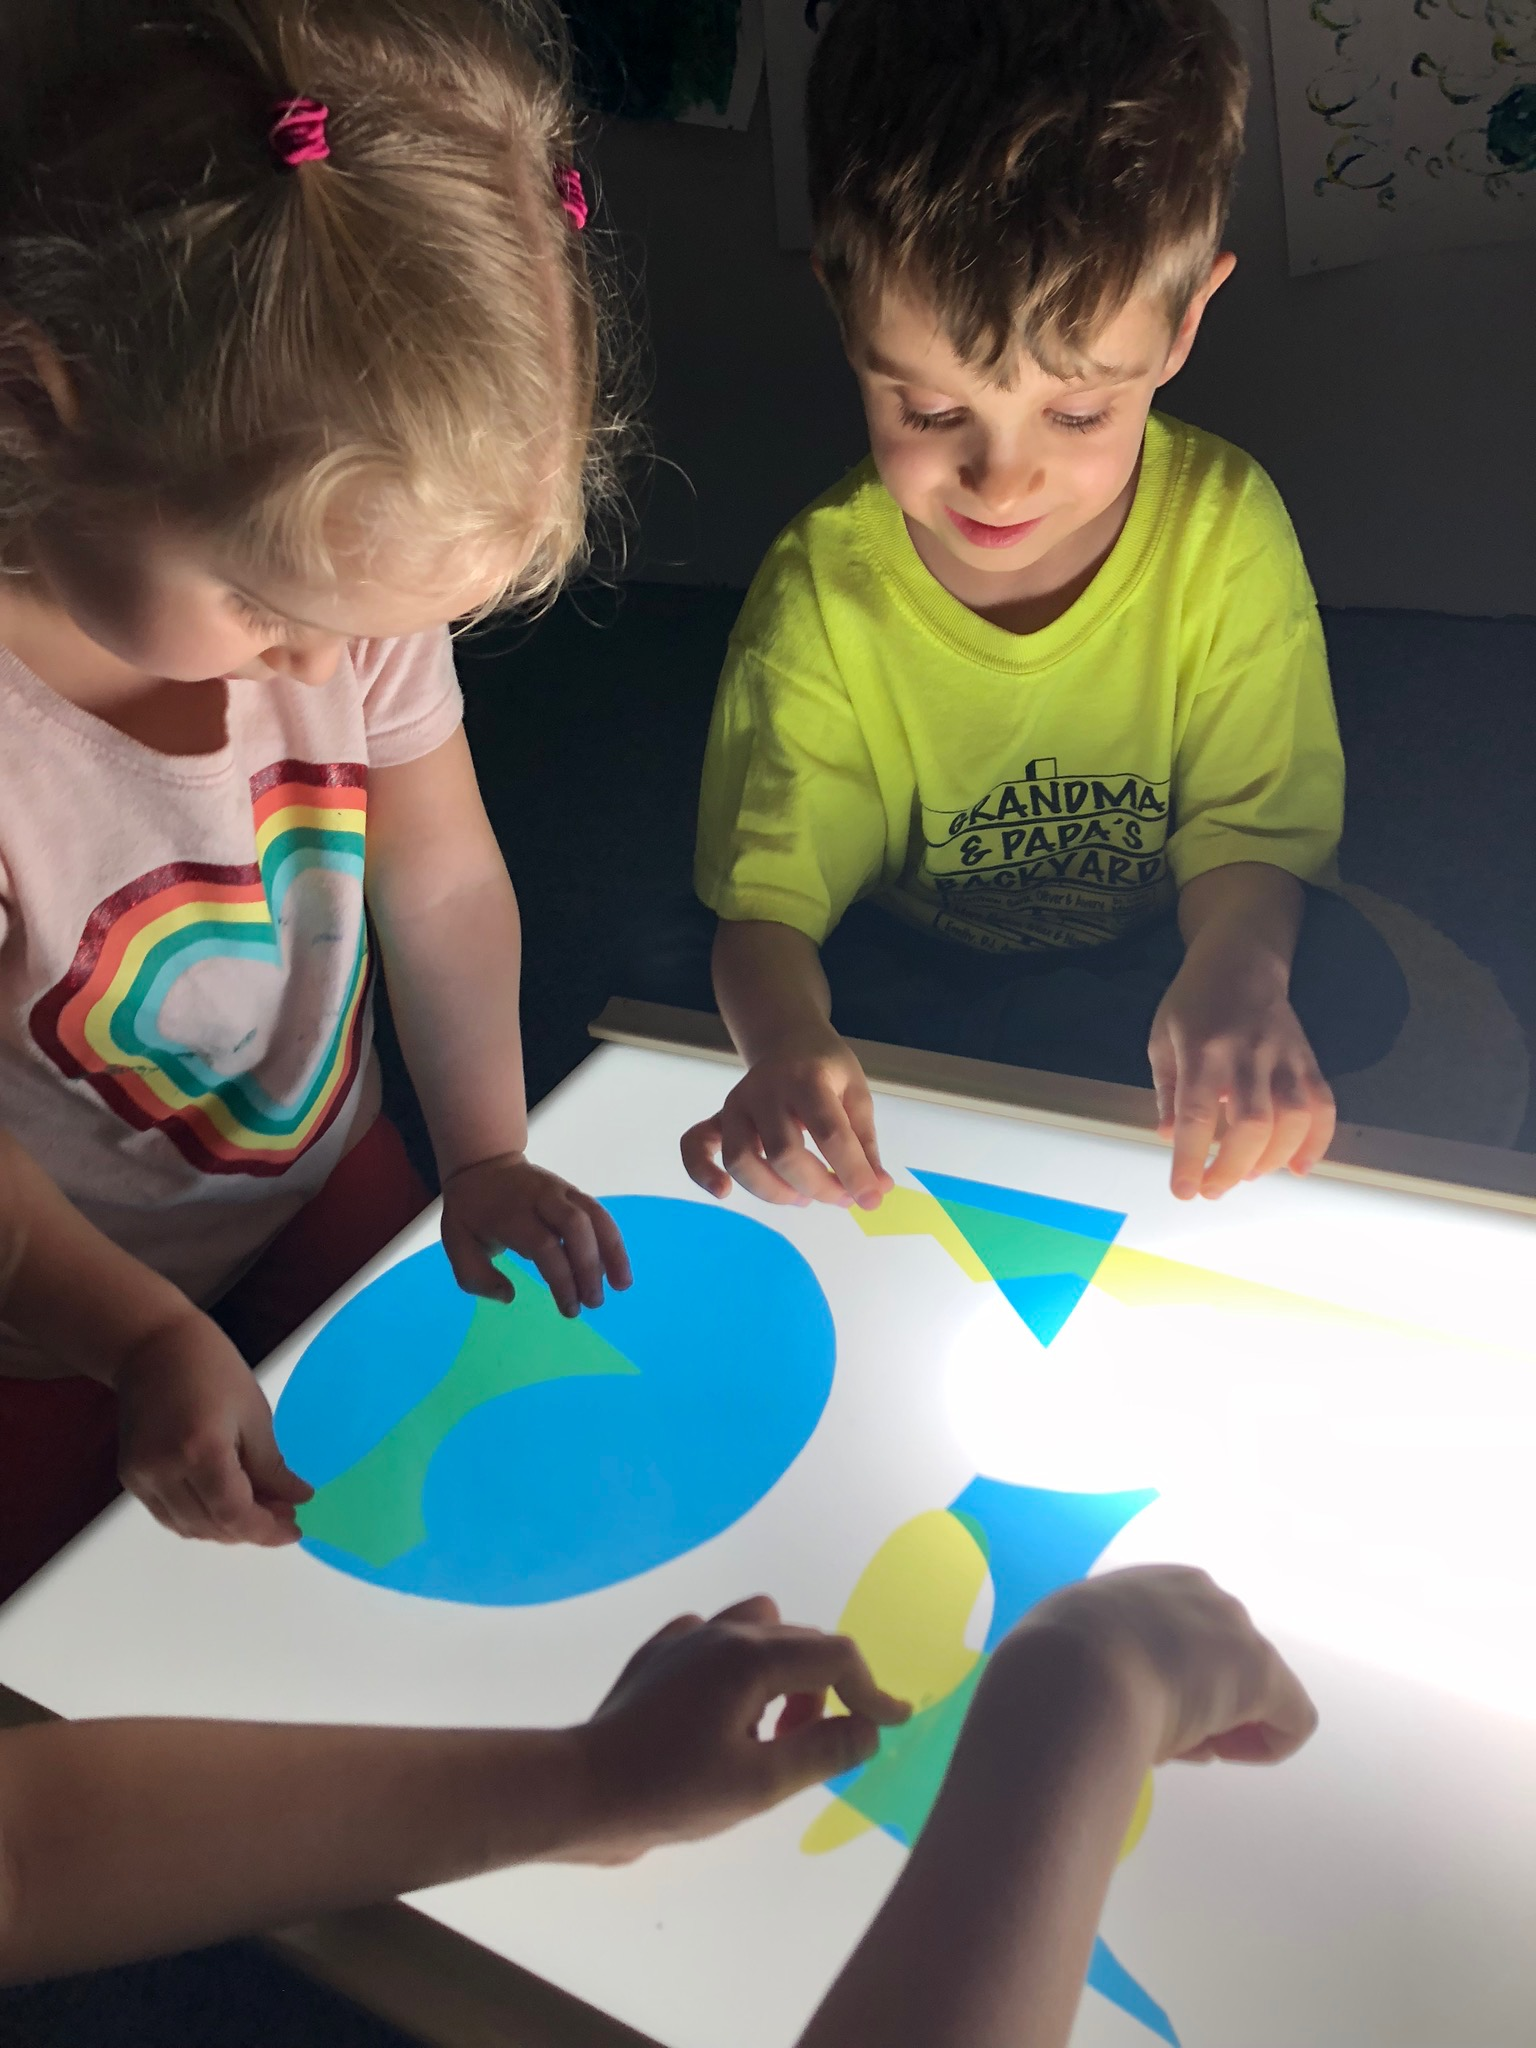 Beyond the Book - A literature inspired play lab where children are the makers and books come to life through guided play.